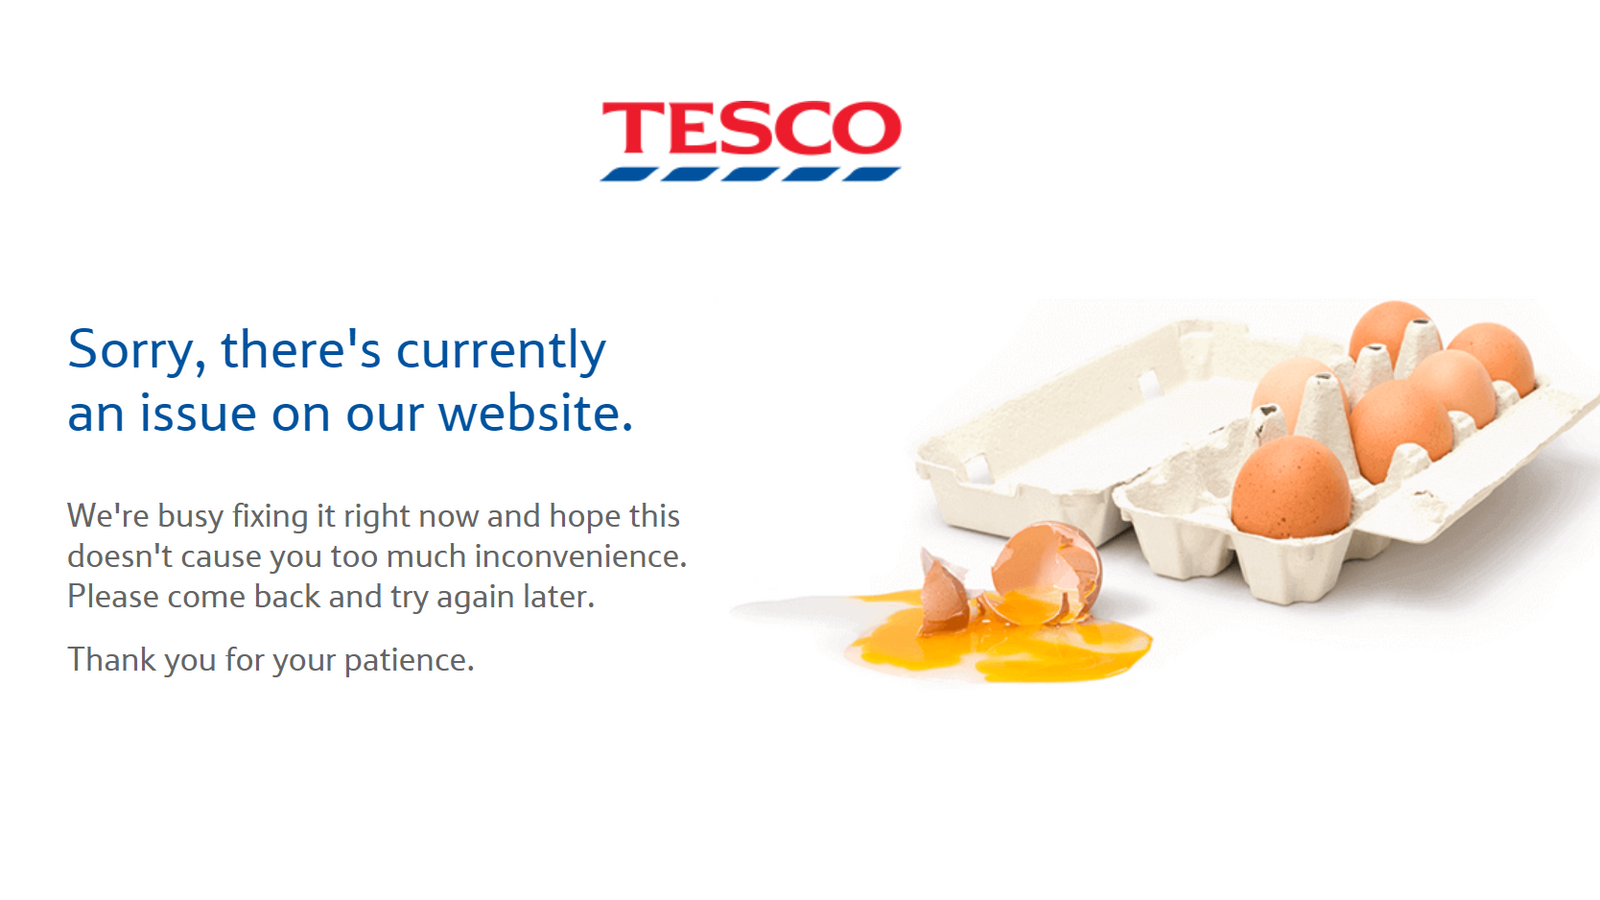 Tesco website and app disrupted following 'attempt to interfere with our systems'